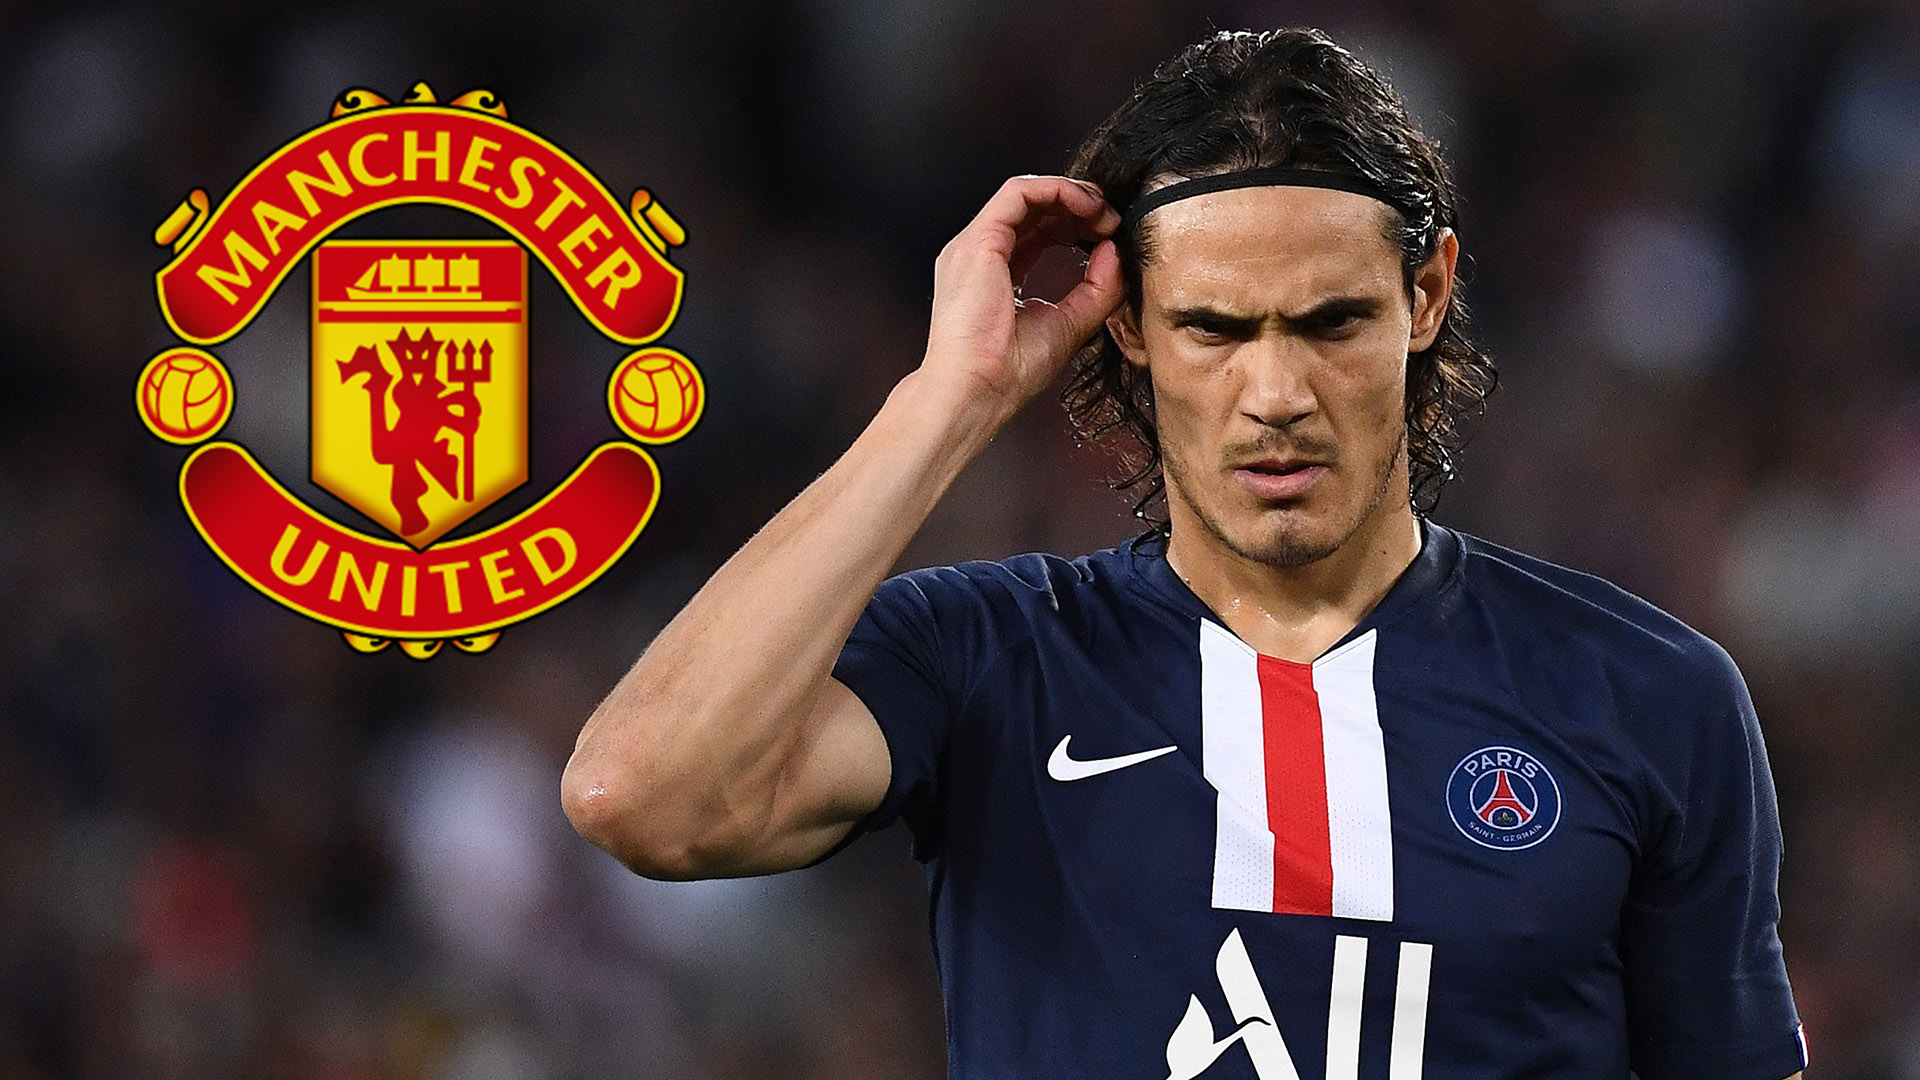 man utd should sign cavani to provide competition for martial rashford says saha goal com man utd should sign cavani to provide competition for martial rashford says saha goal com